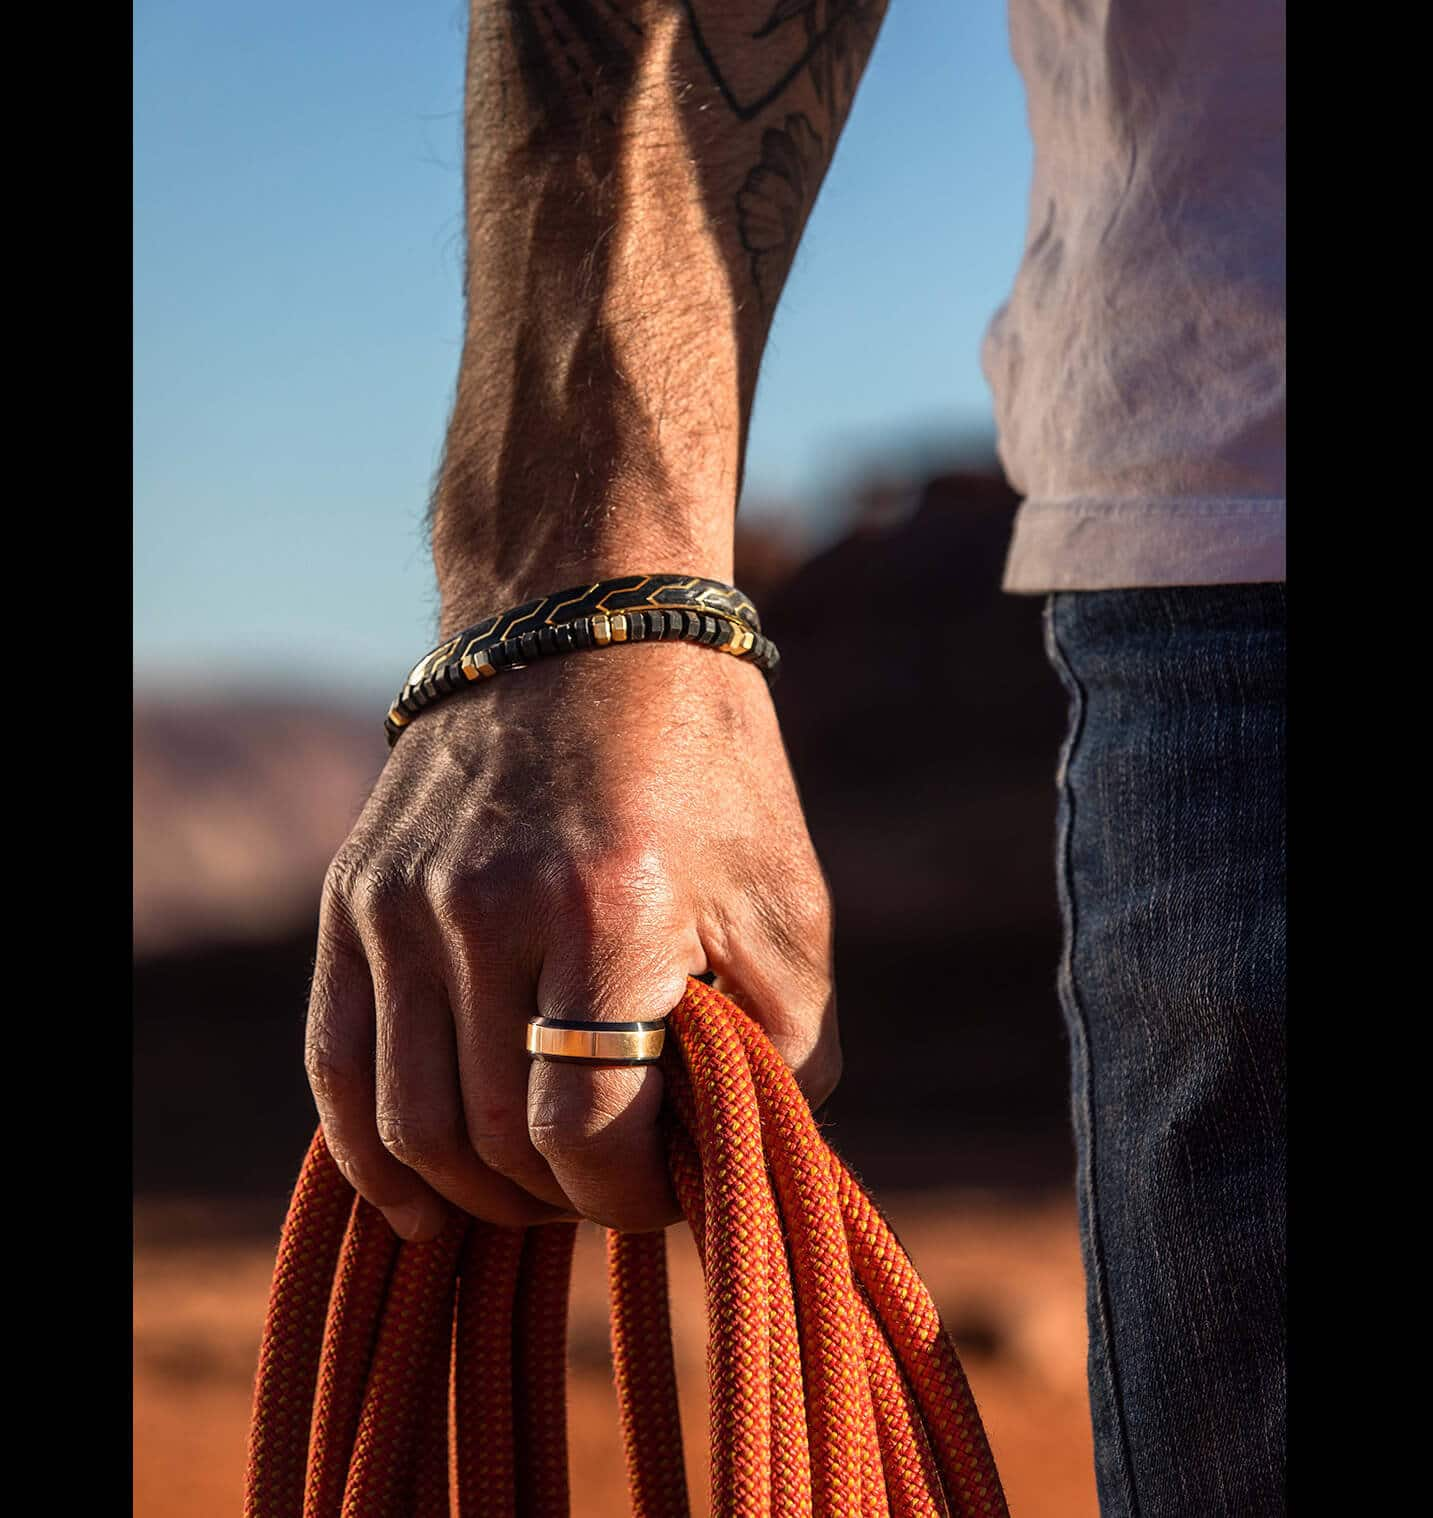 A color photo and video are placed side by side. The photo shows a man's hand holding orange ropes outdoors while wearing David Yurman bracelets and a ring. The video shows Jimmy Chin taking pictures while climbing a large rock.